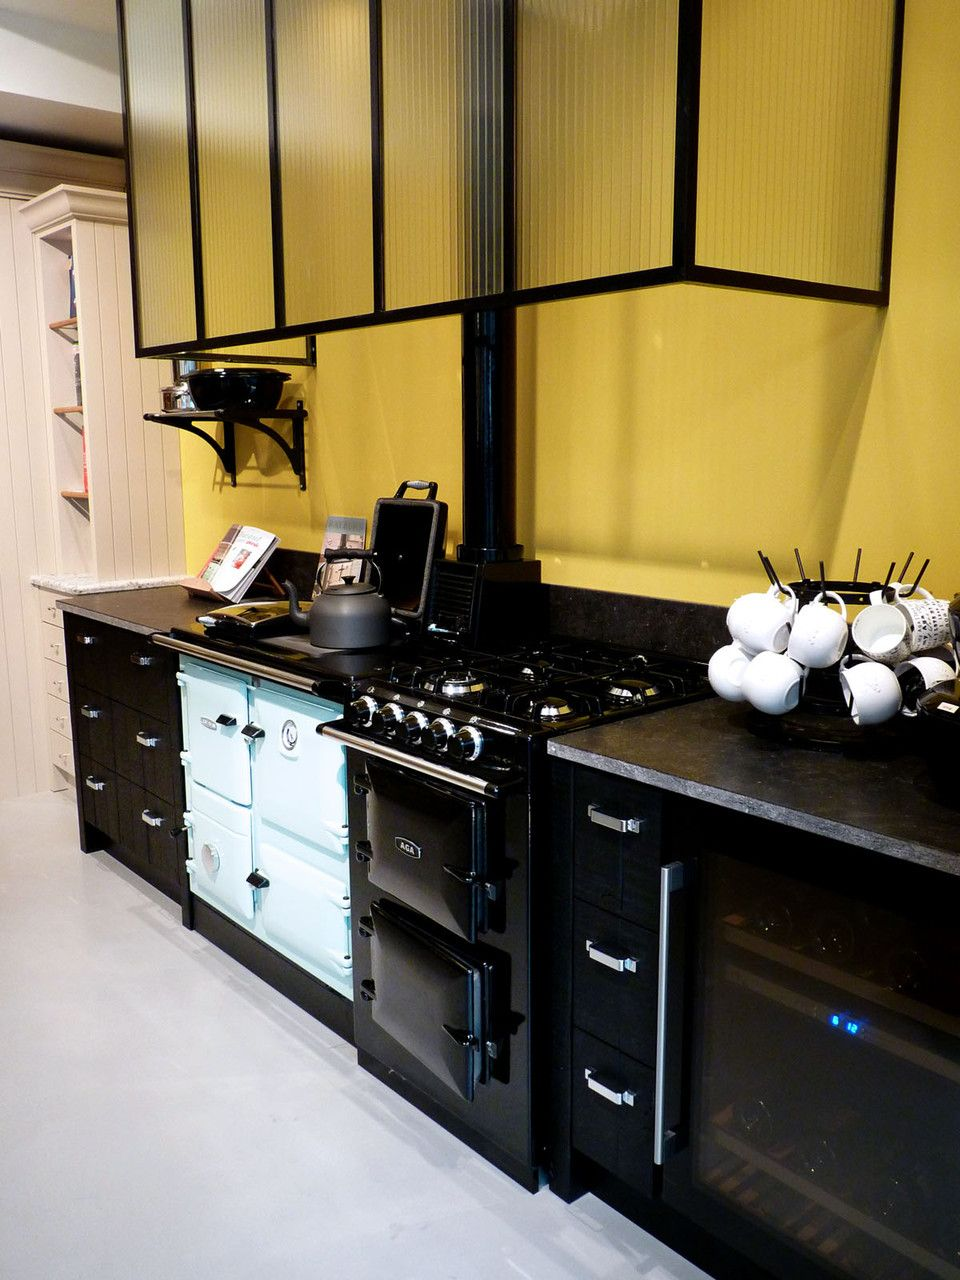 ateliers malegol 230 rue st malo rennes aga rayburn. Black Bedroom Furniture Sets. Home Design Ideas